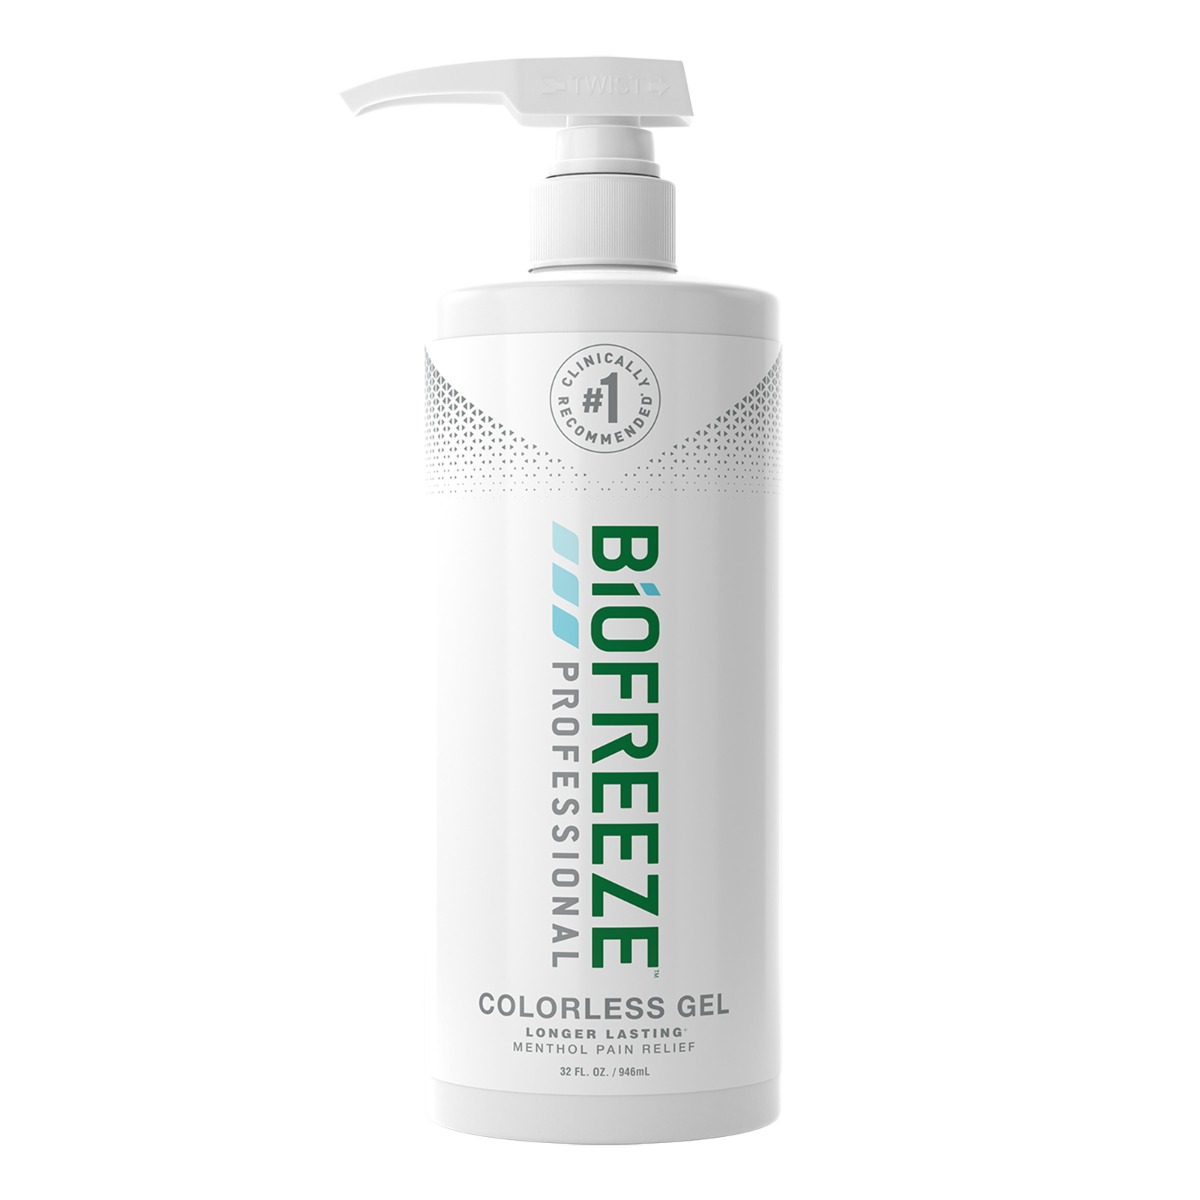 Image for Biofreeze Professional - 32 oz. Gel with Pump - Colorless from Stockd.